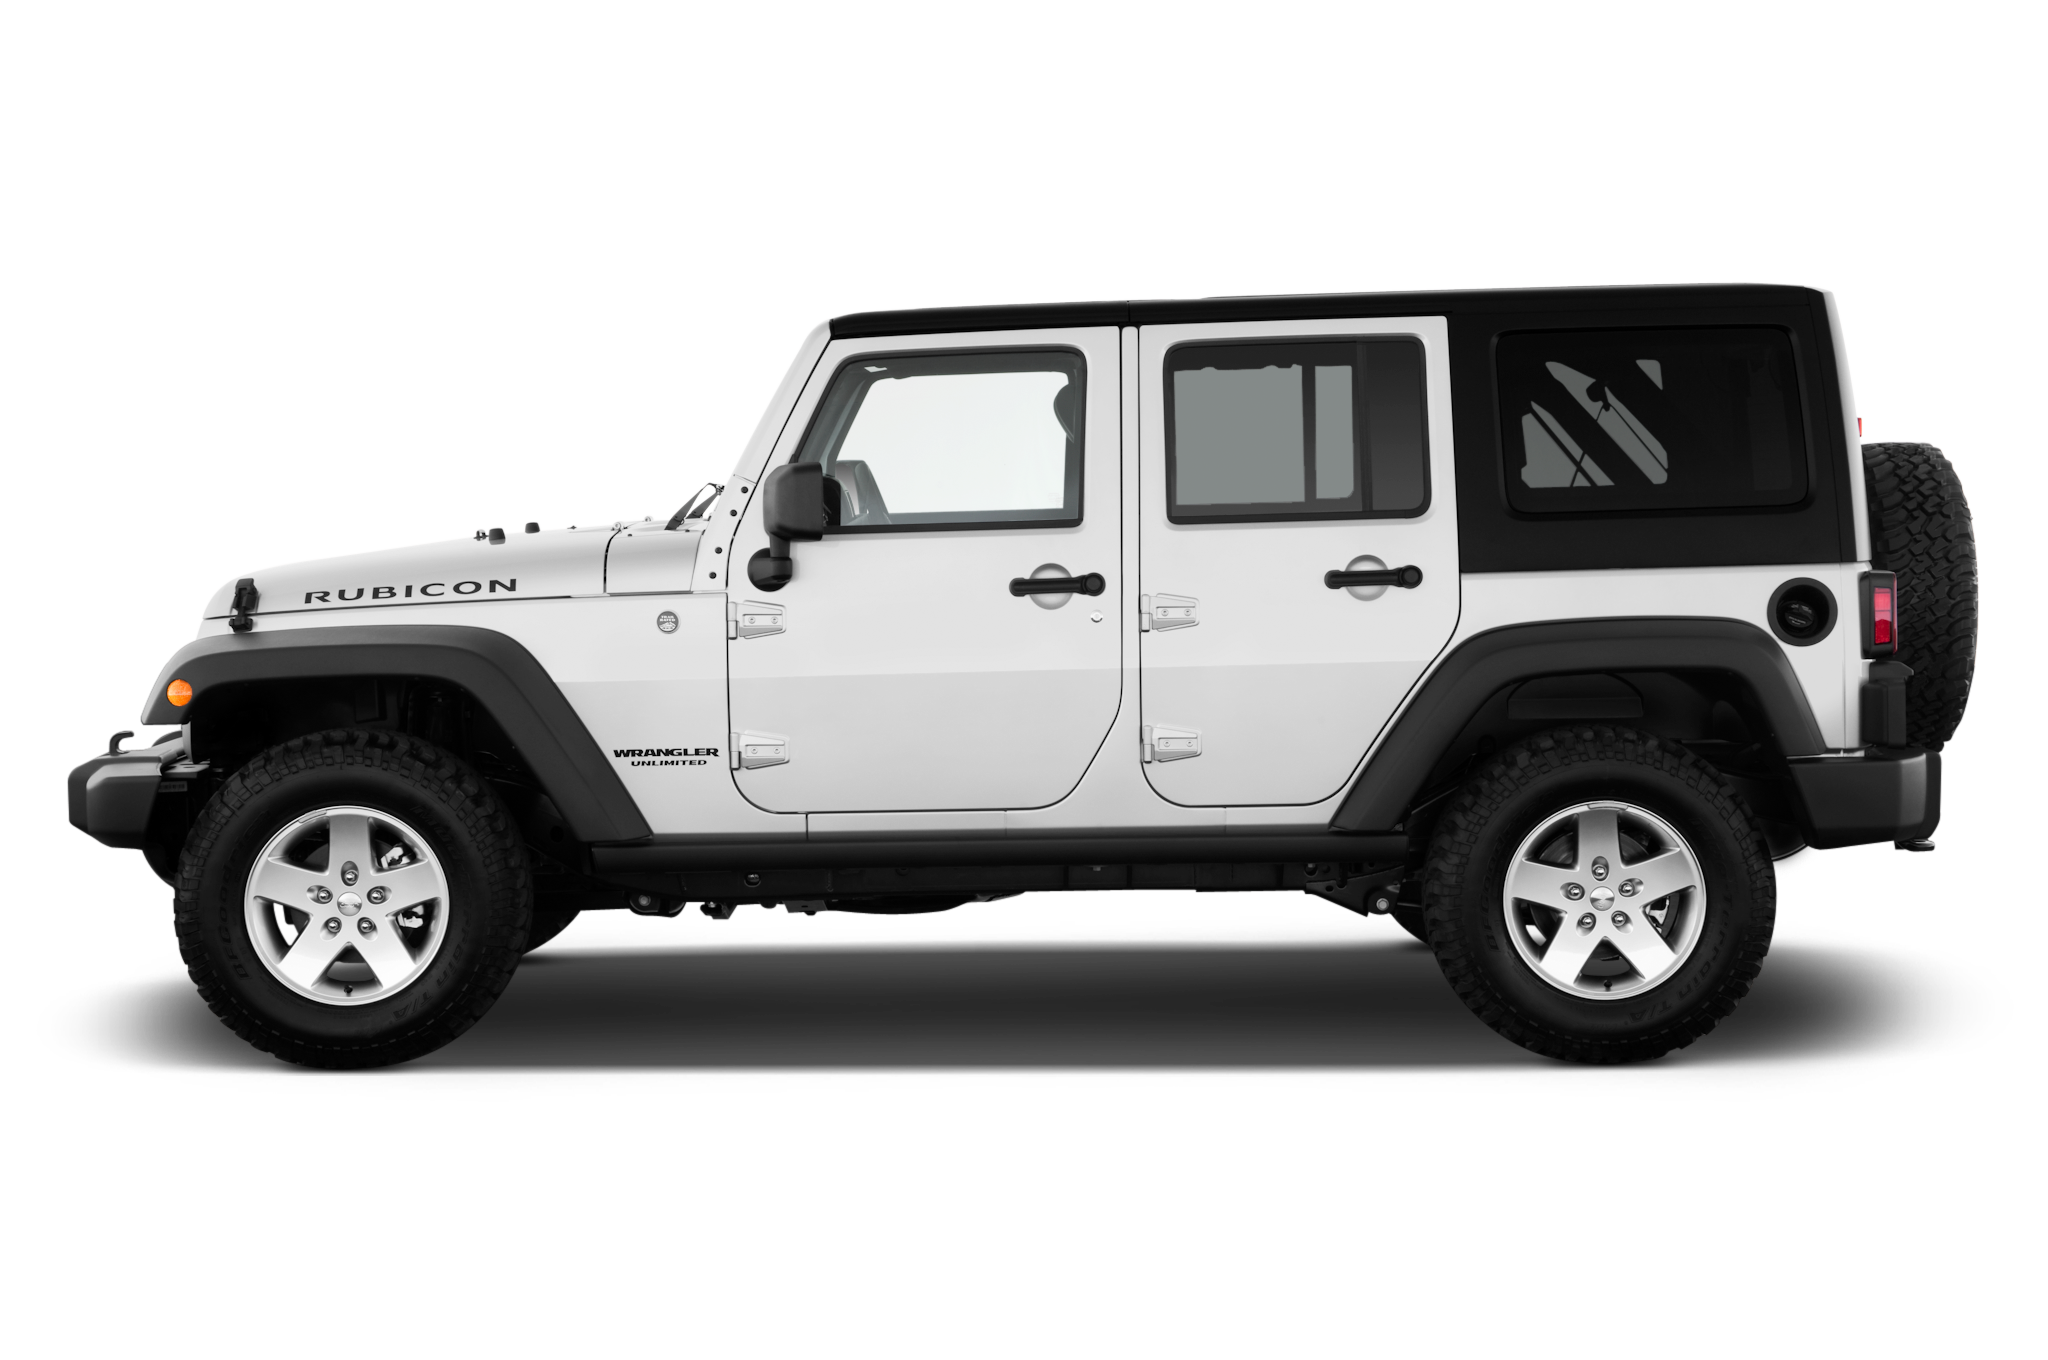 wrangler first look. Jeep silouette png clip library stock